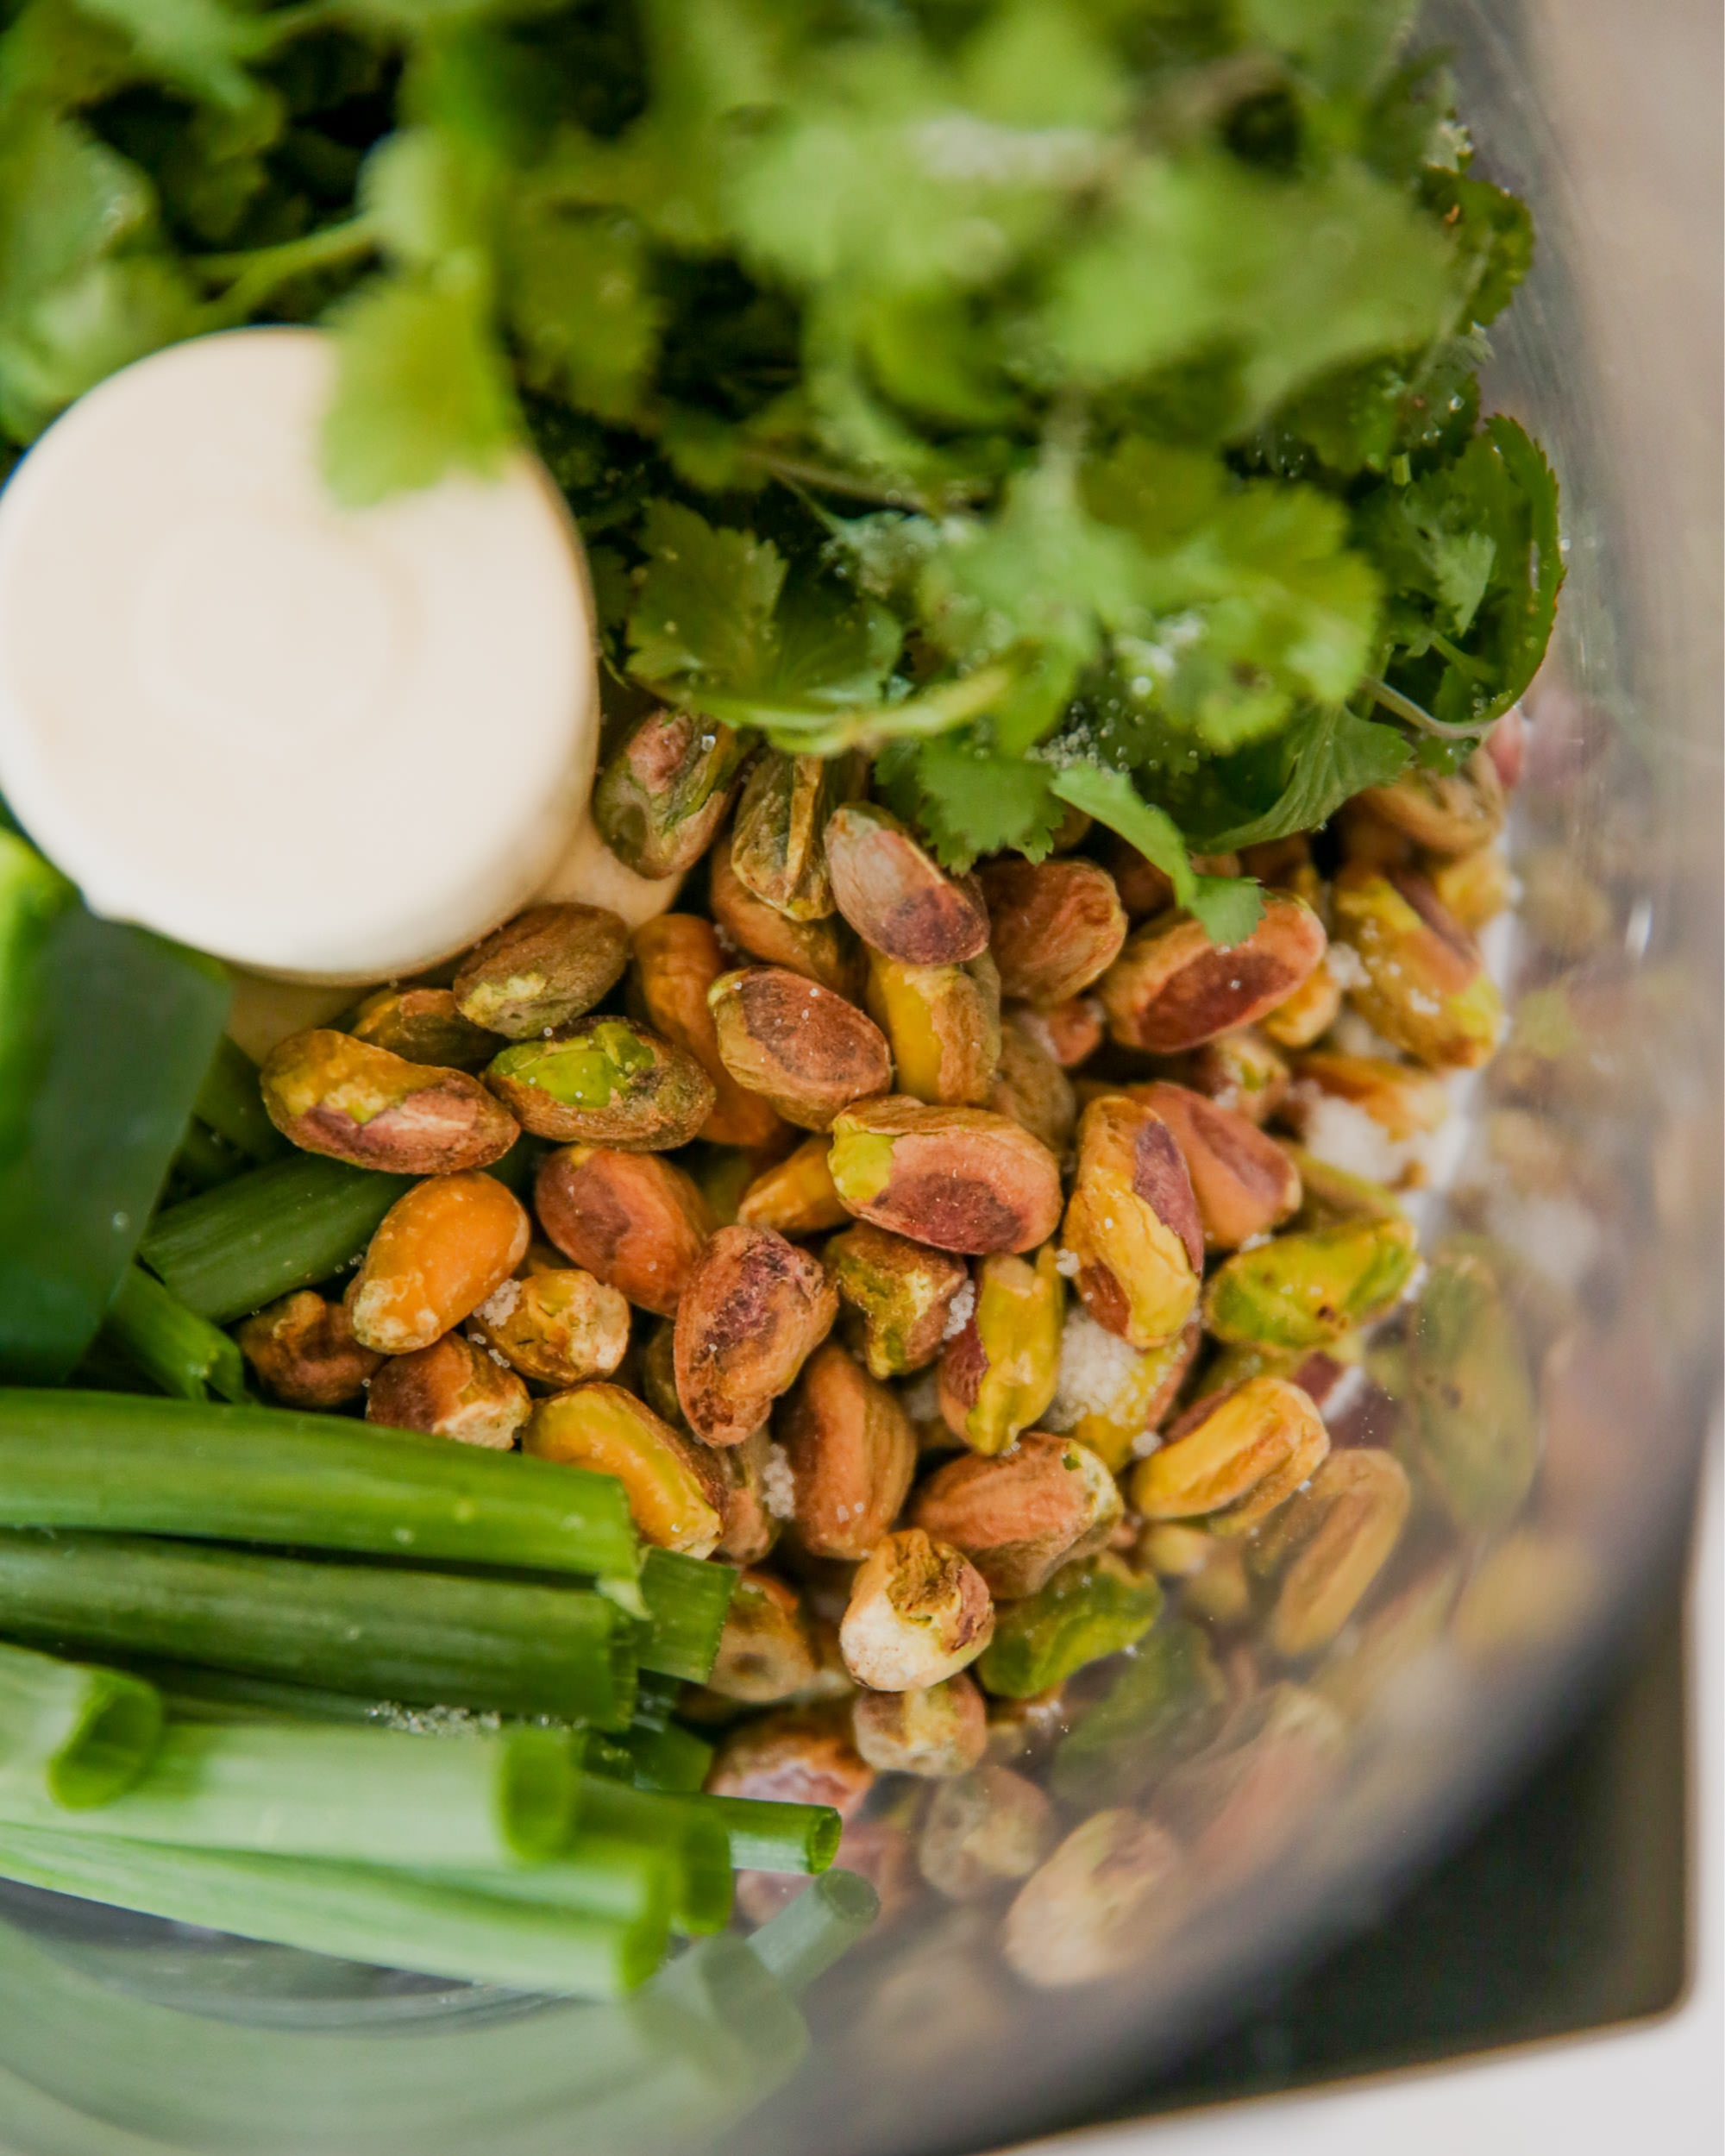 Pistachios+and+Cilantro+for+Green+Goddess+Dressing